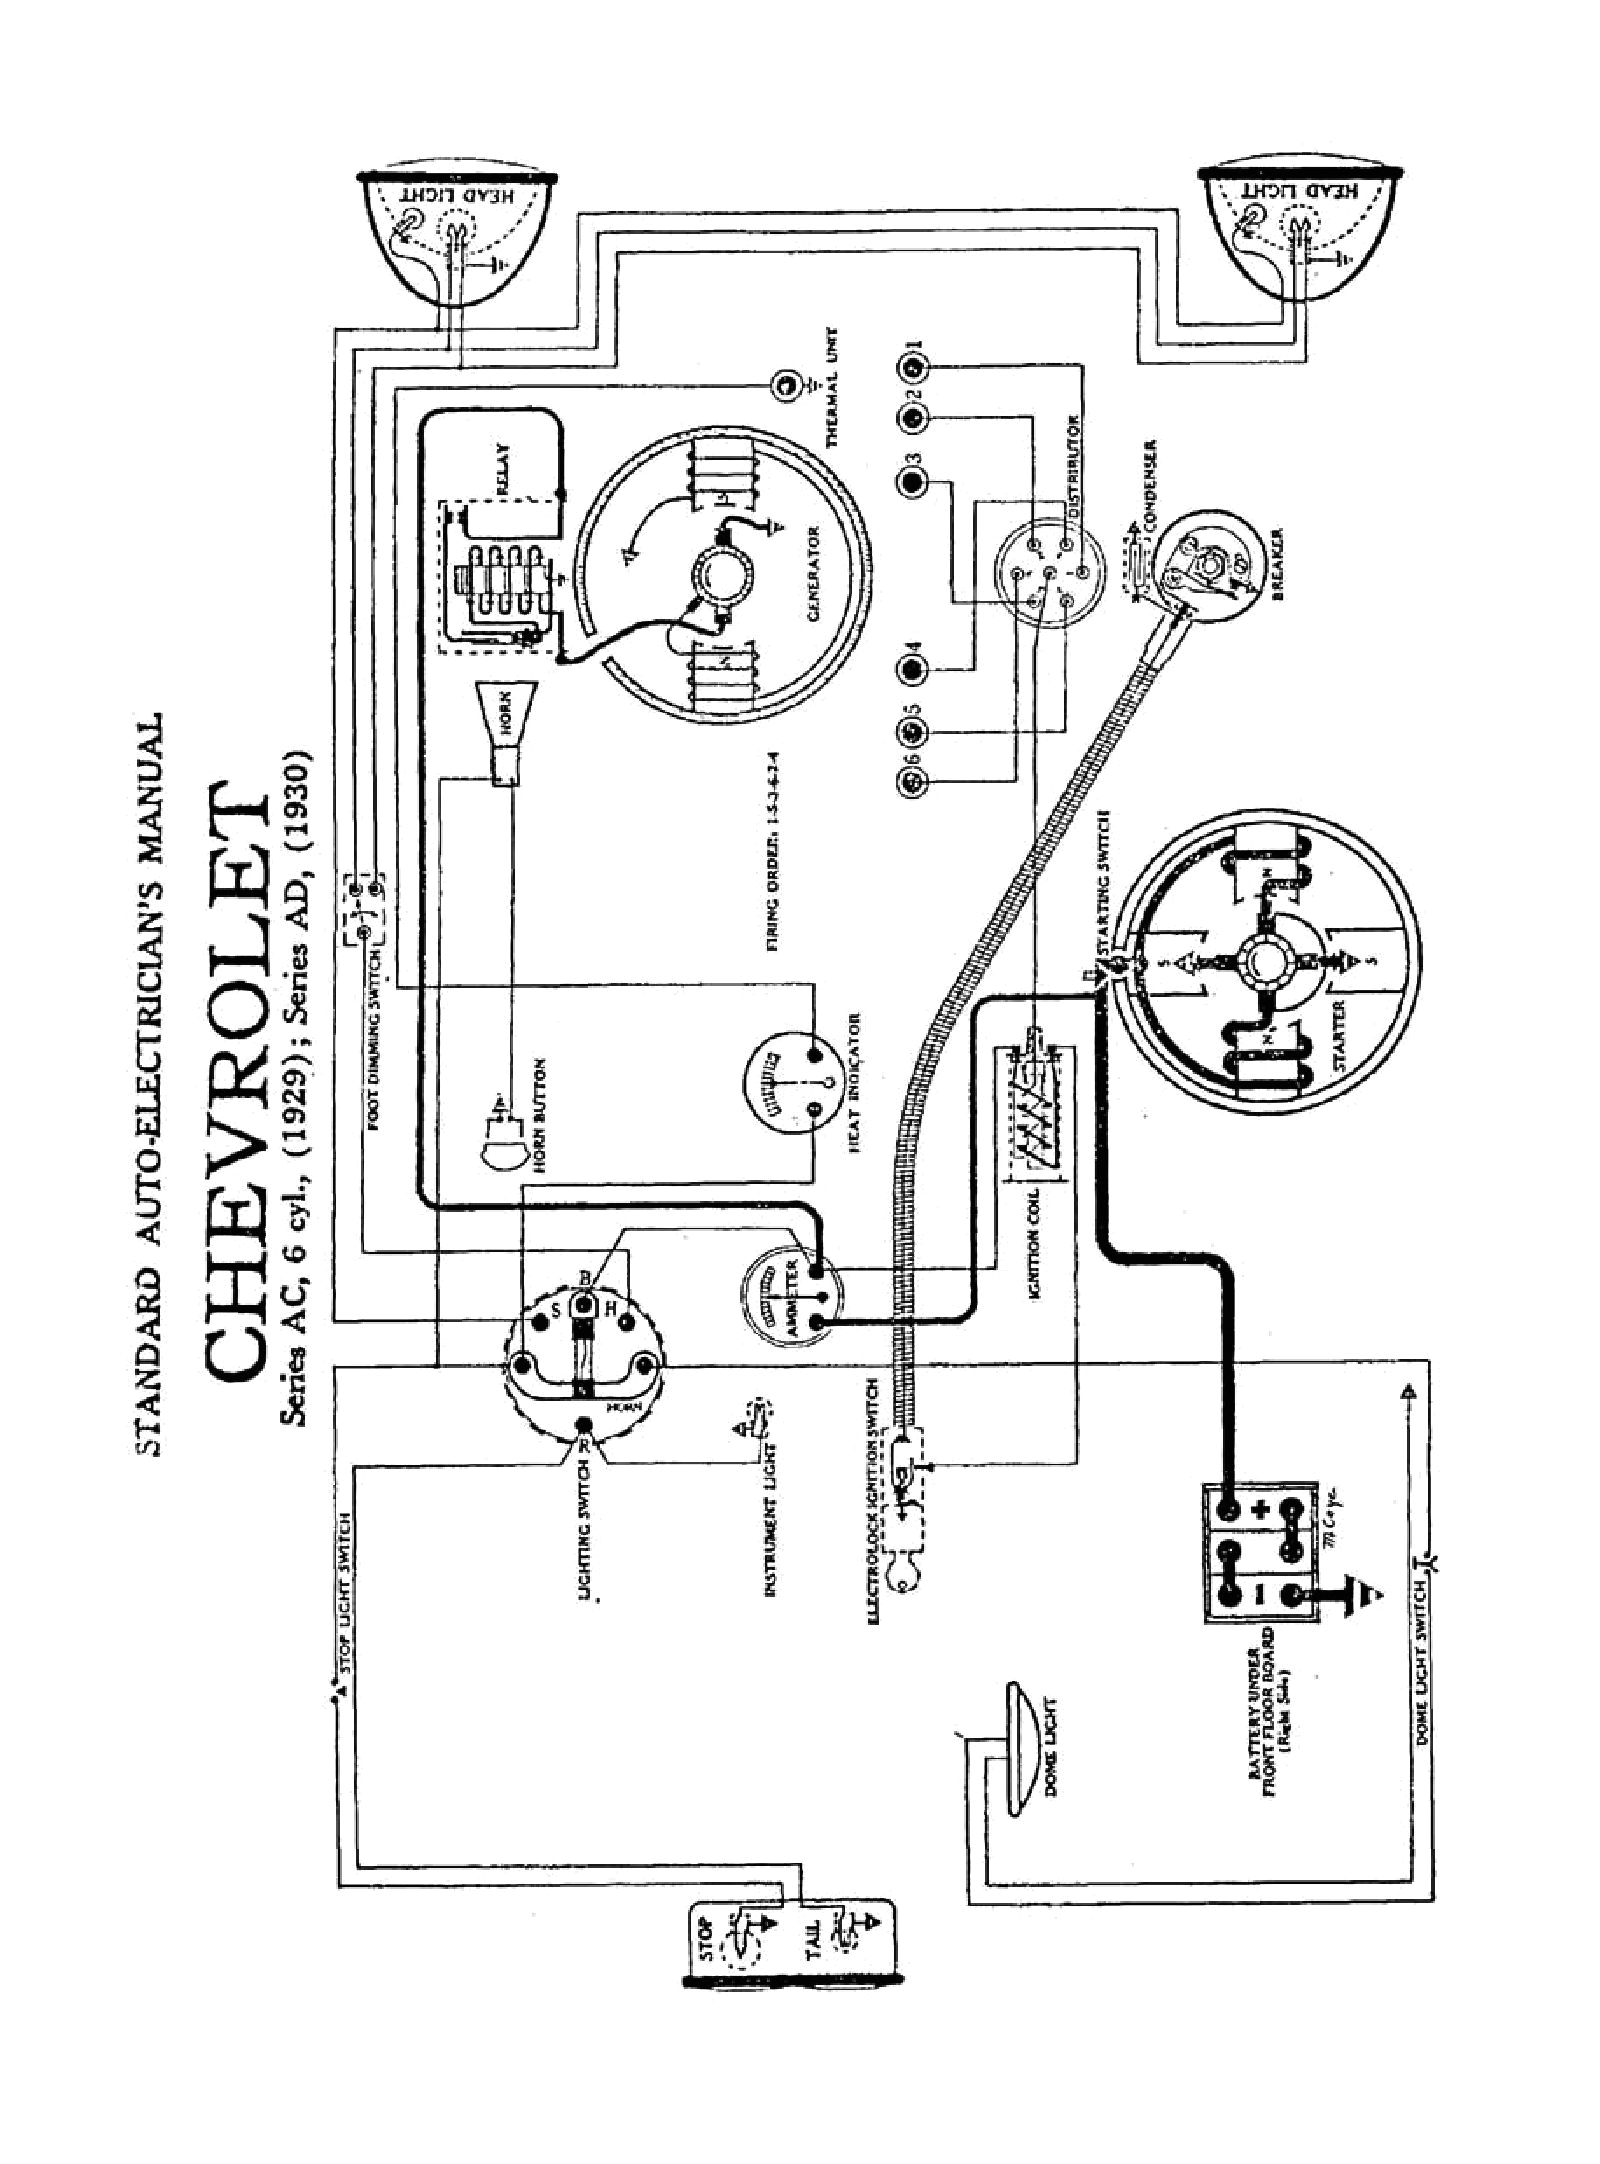 1930 series ad model 1931 1931 wiring diagrams